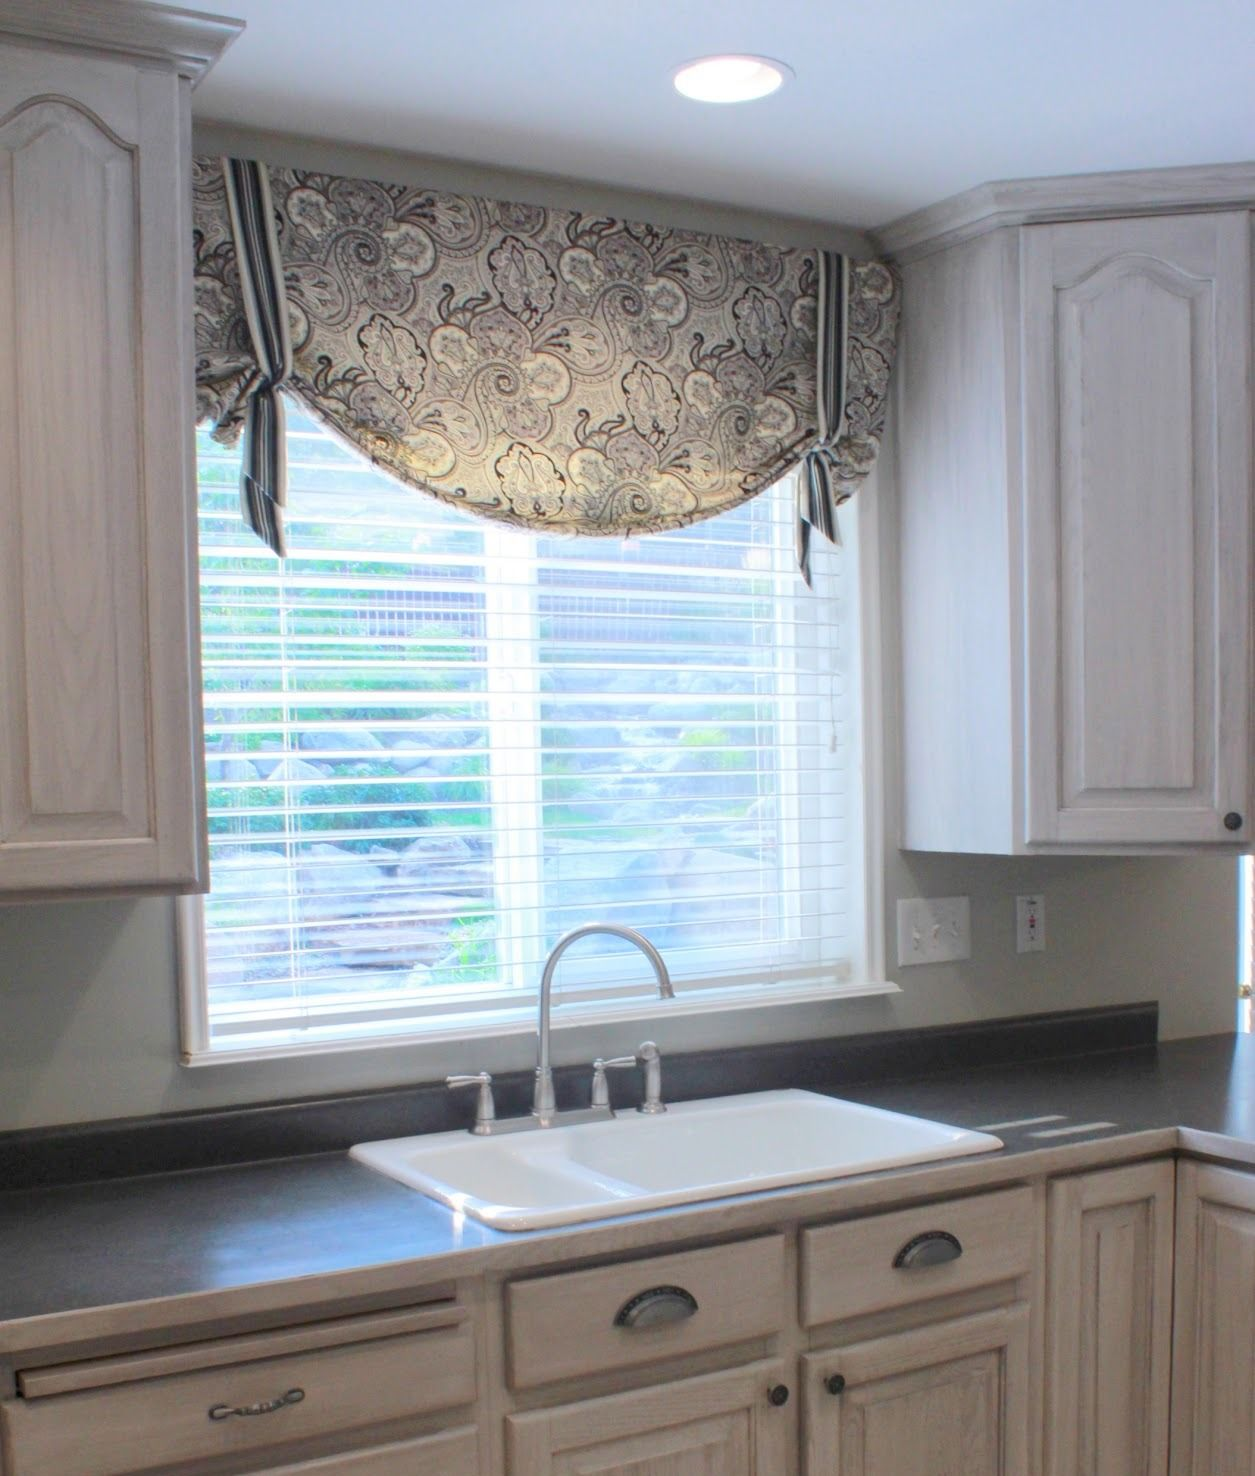 Genial Kitchen Valance Patterns | Kitchen Valance Ideas Floral Pattern Kitchen  Interior